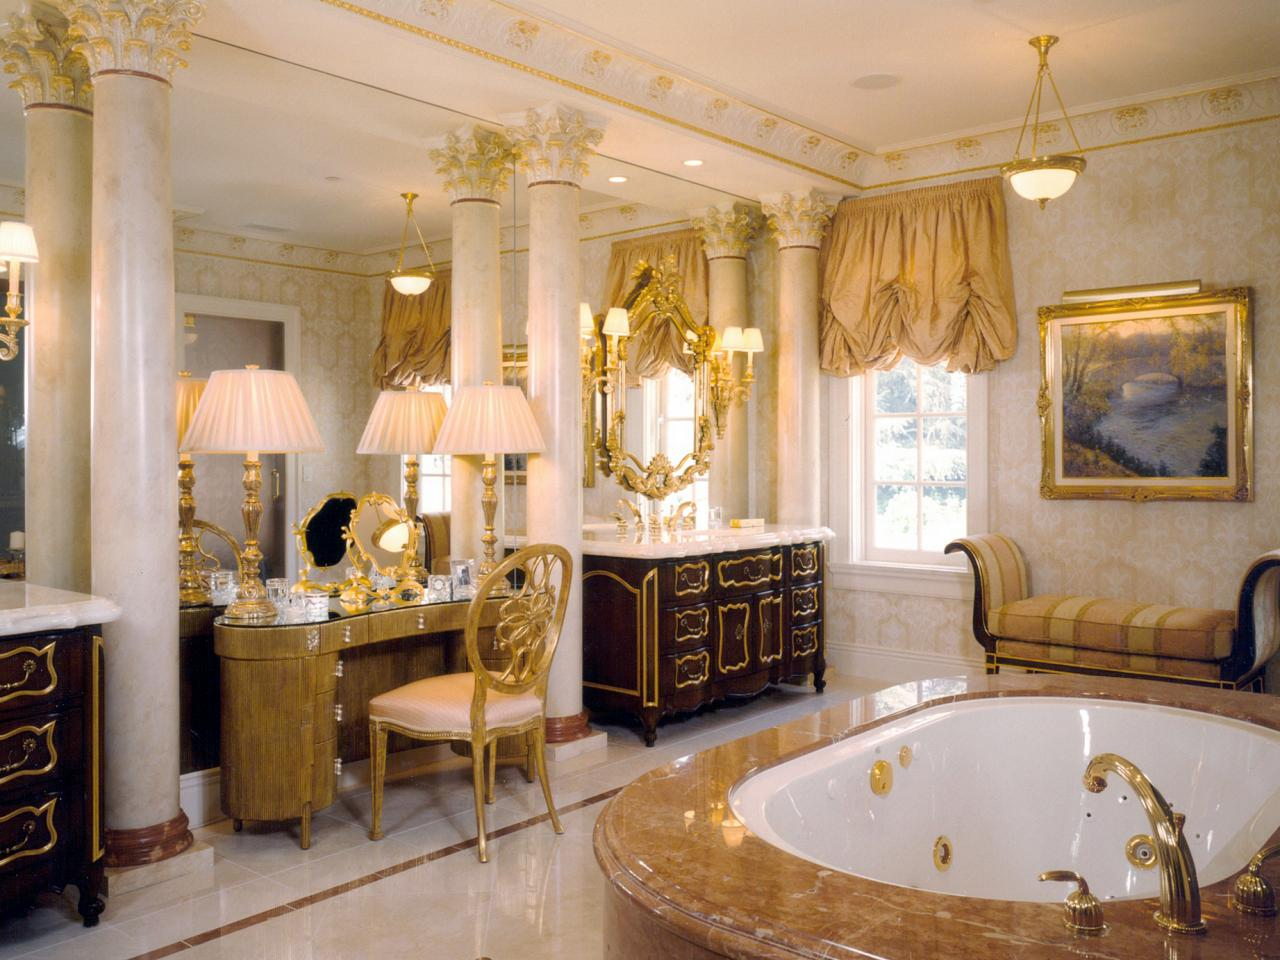 home interior purple gold color accent dining room ideas with golden bathroom decorating luxury classic design marble bathtub table lamp chair and cadle holder hanging lighting